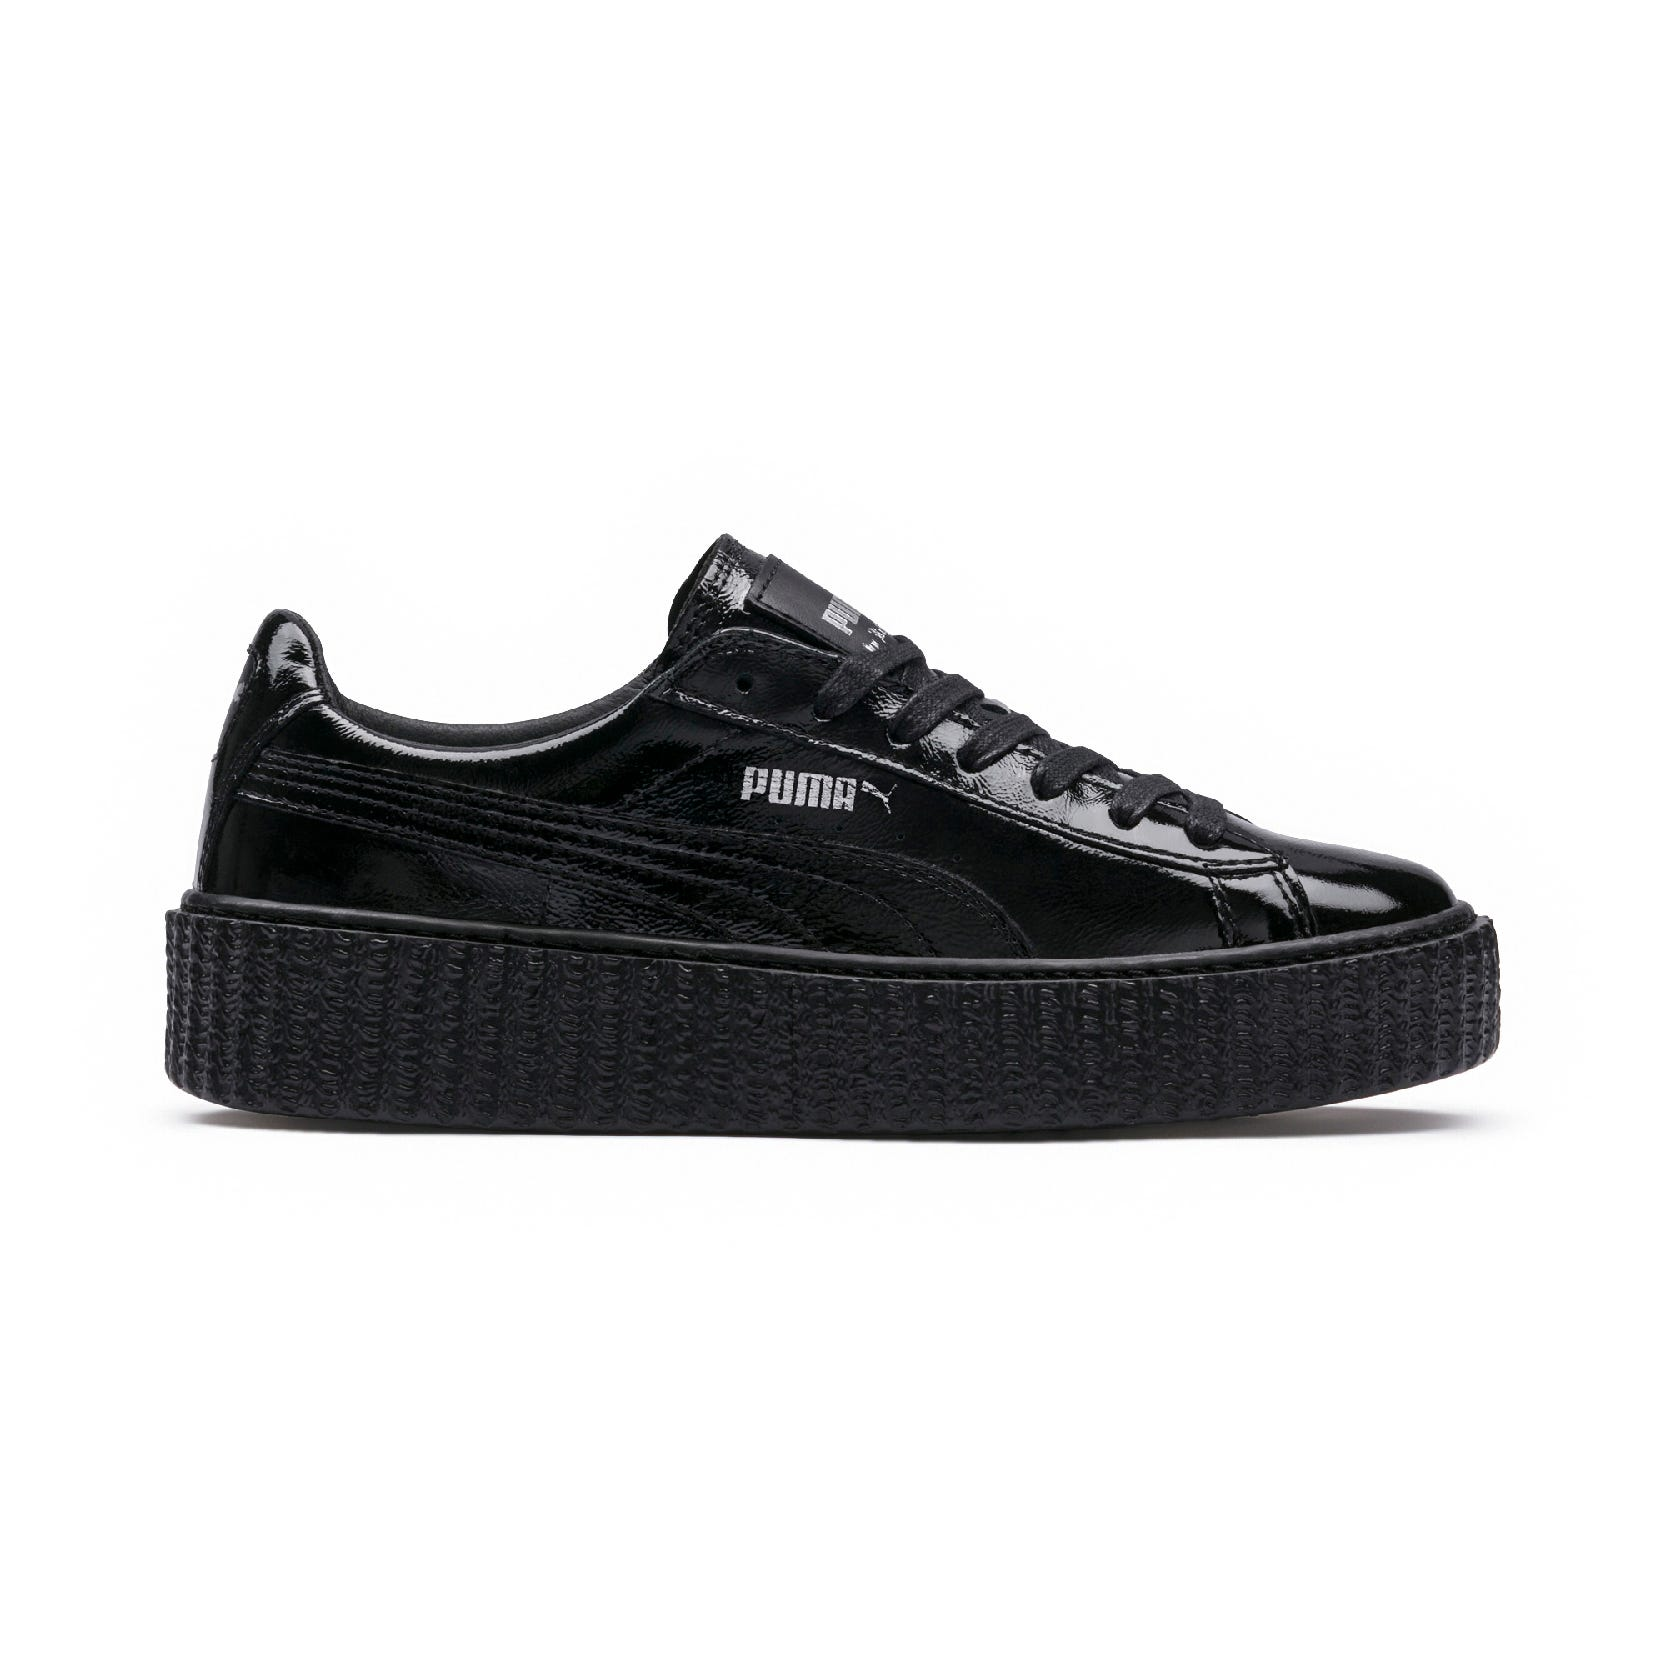 buy popular 14920 9d498 Rihanna Fenty Puma Creeper Sneaker New Black White Drop